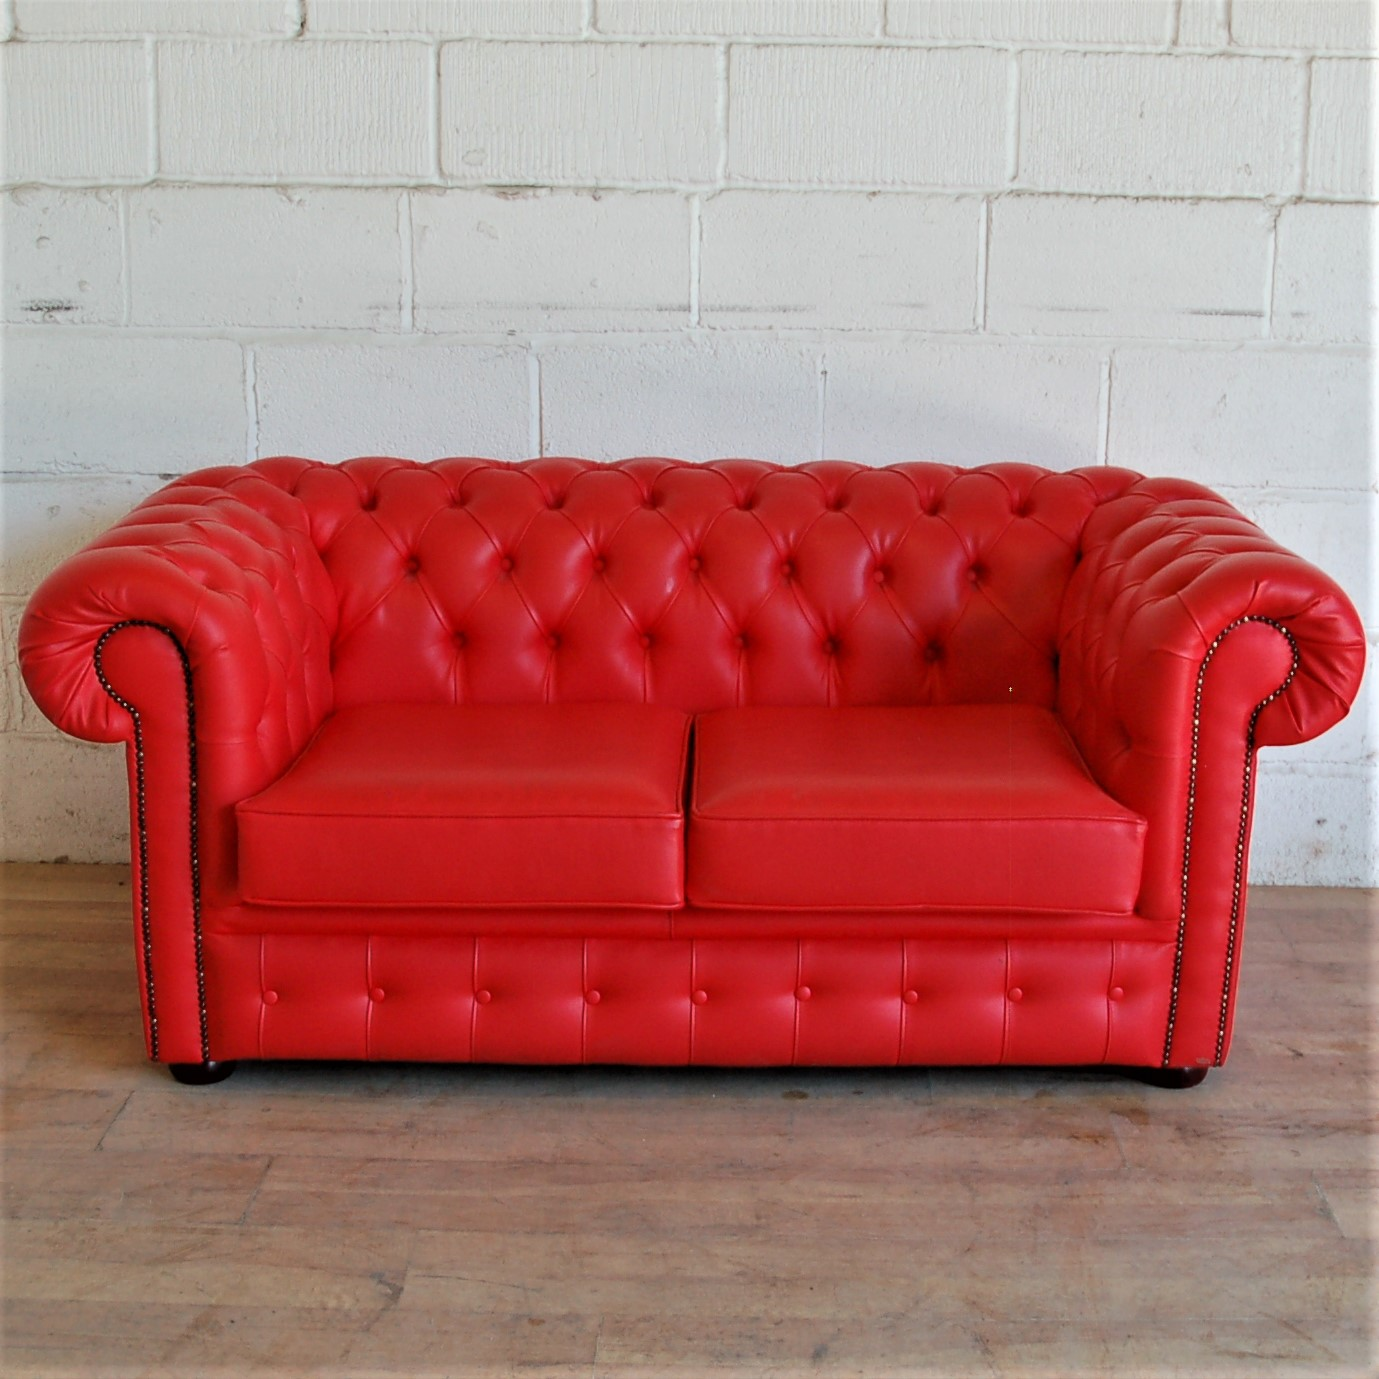 Leather Sofa Wholesalers Uk: SOLD Red Faux Leather Chesterfield Sofa 3012